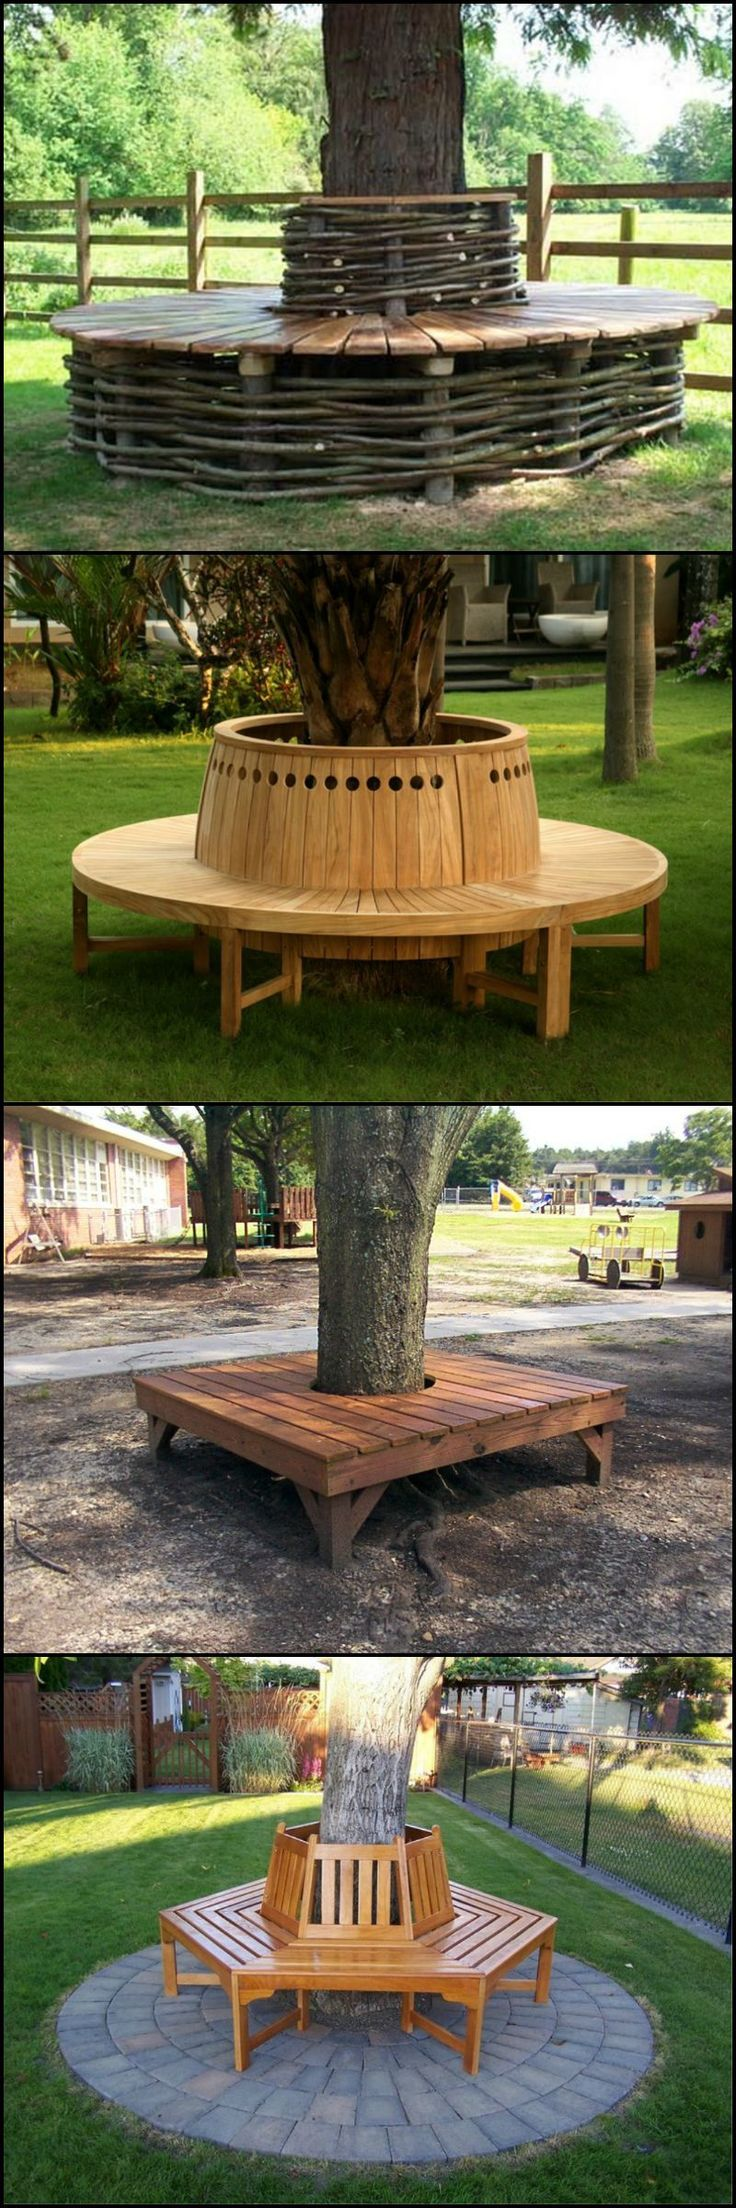 Nice garden trees   best Outdoor images on Pinterest  Play areas Childhood games